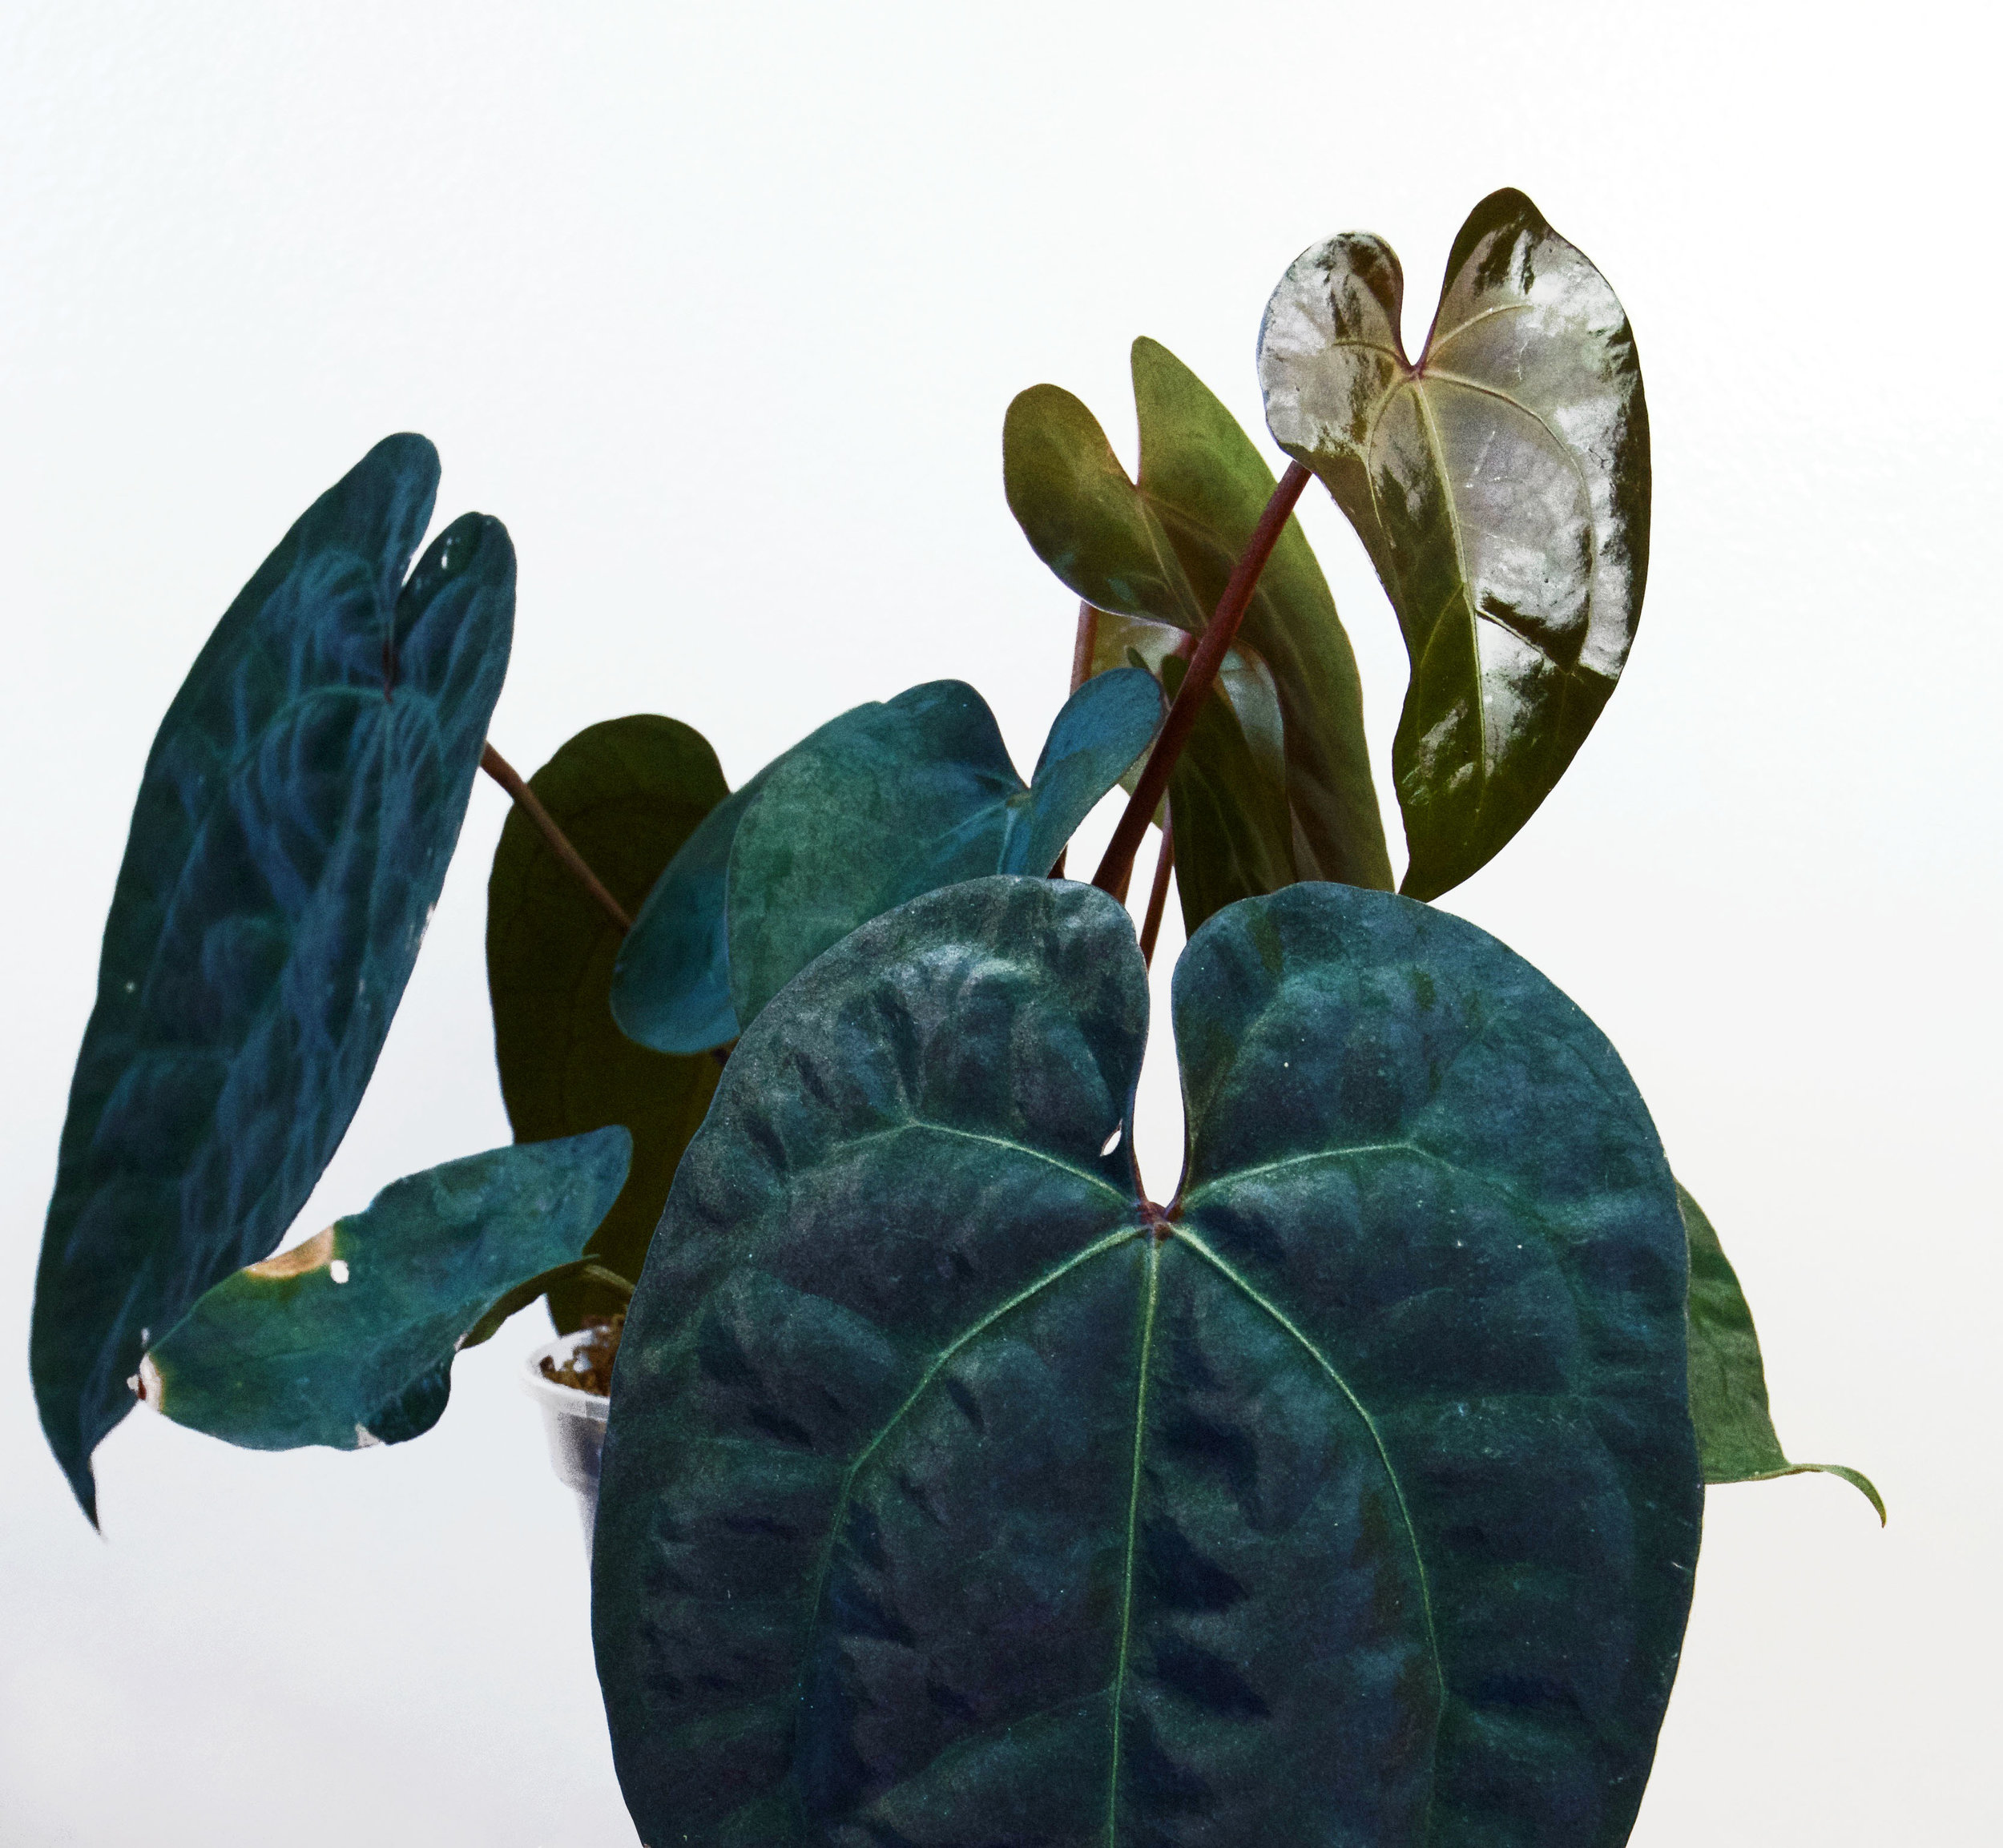 Anthurium  'Ace of Spades' - the young leaves are shiny and bronze.